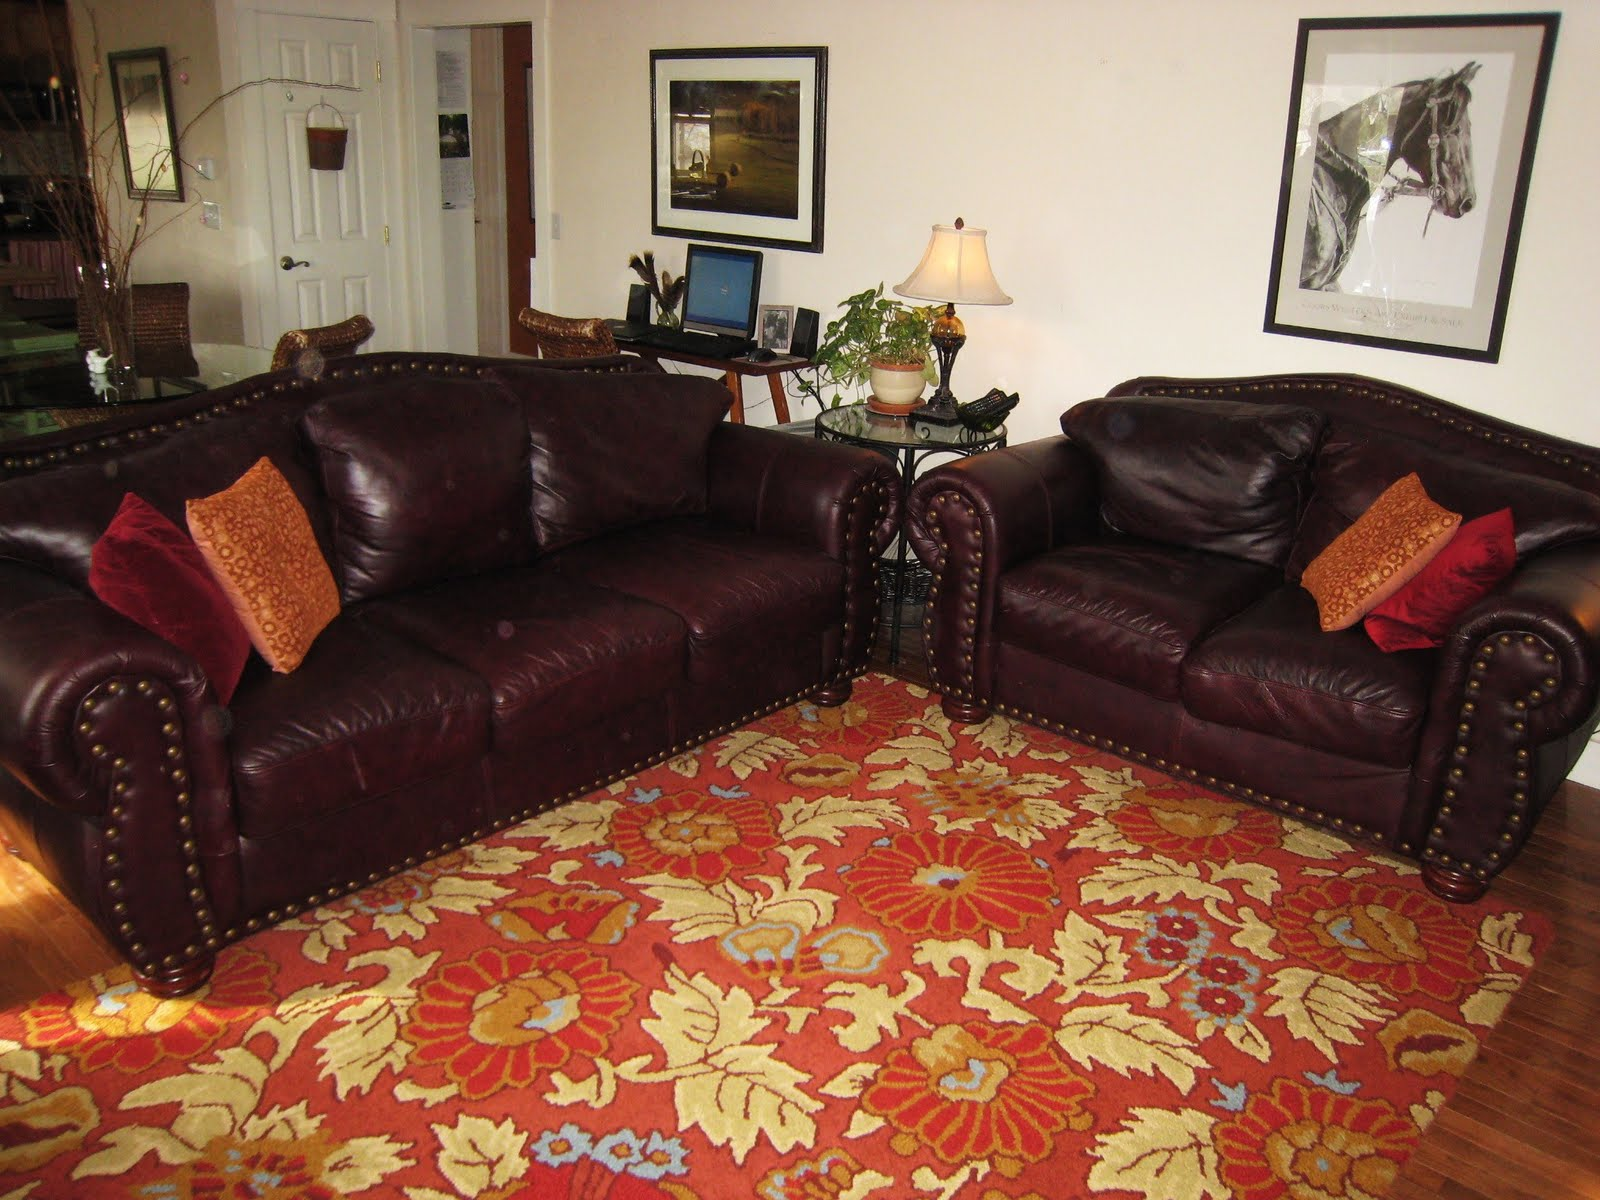 Craigslist Living Room Furniture - Home Design Ideas and Pictures